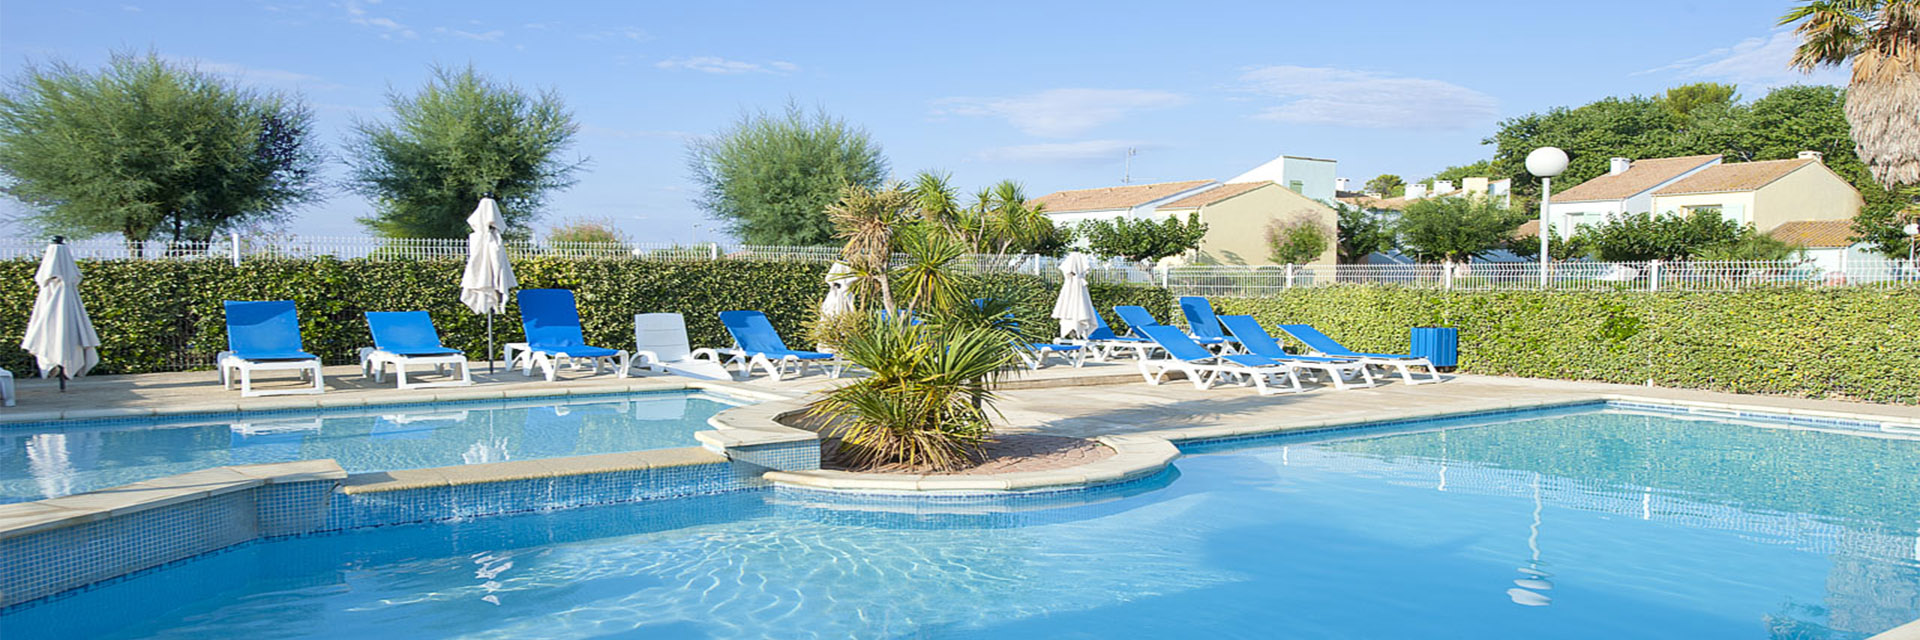 Village_club_vacances_pyrenees-tarbesou-piscine